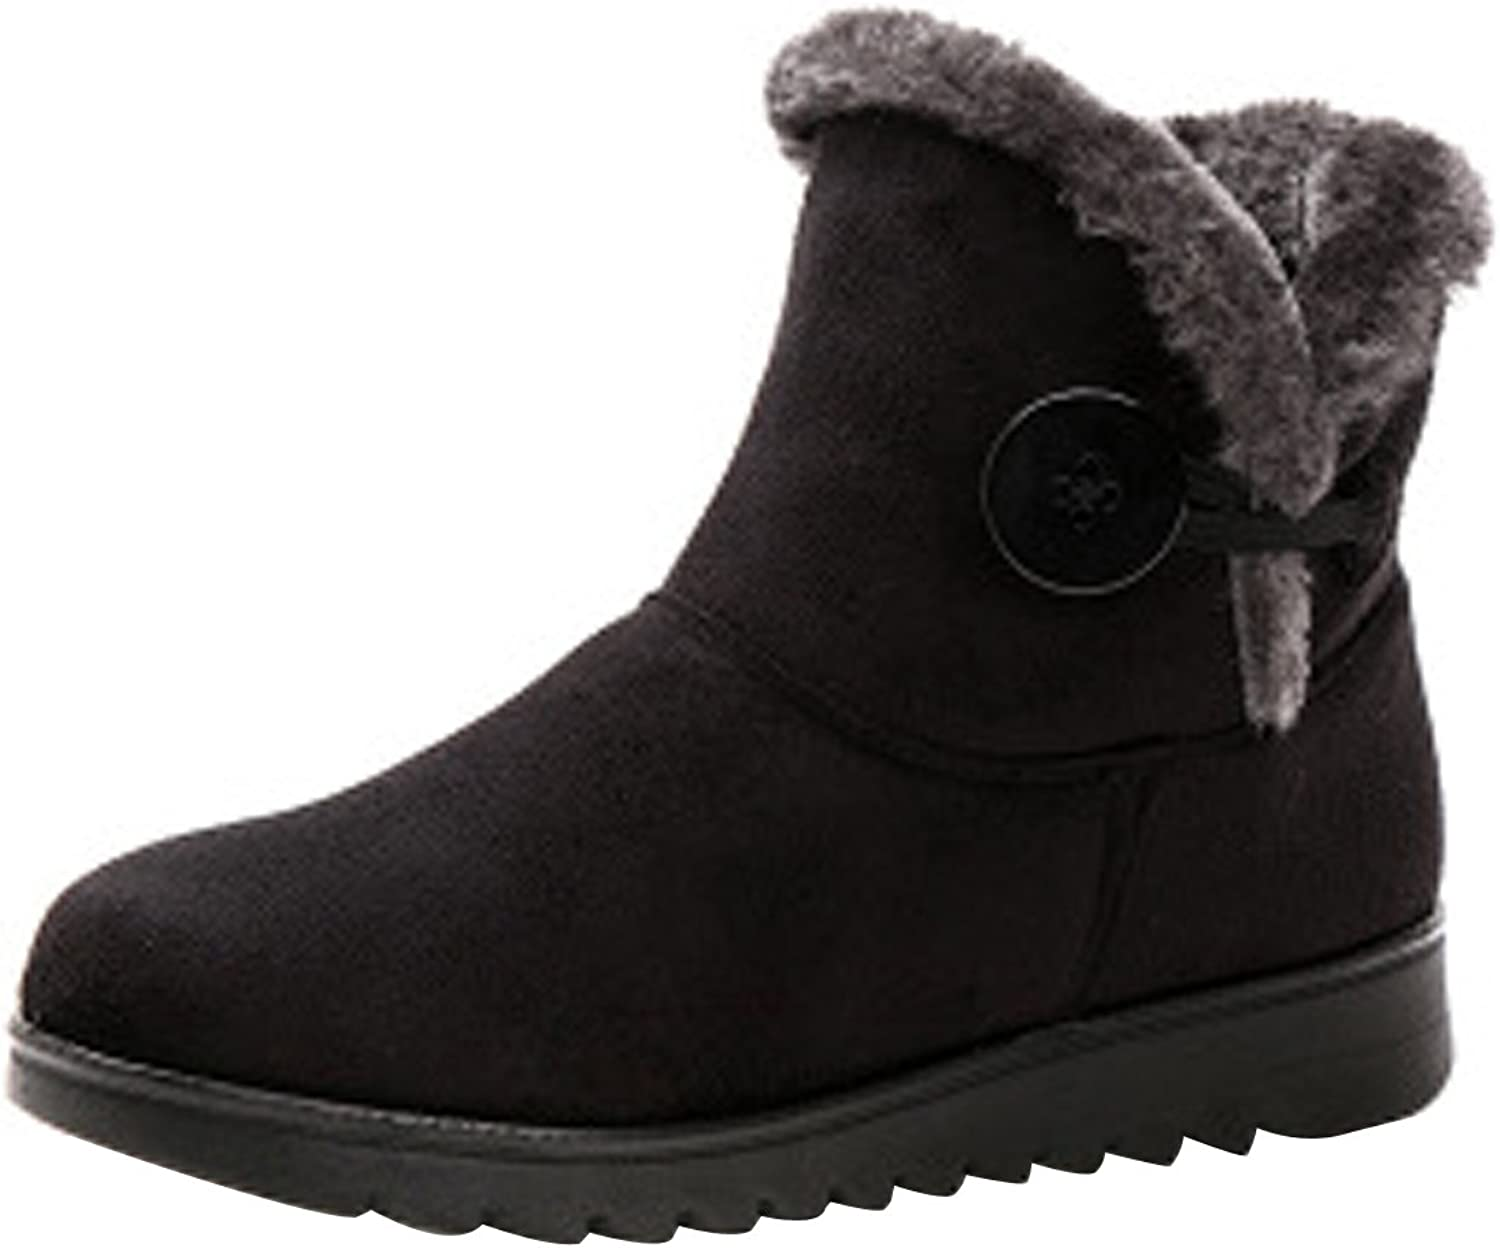 VFDB Women Winter Botton Snow Ankle Boots Fur Warm Platform Slip On Booties